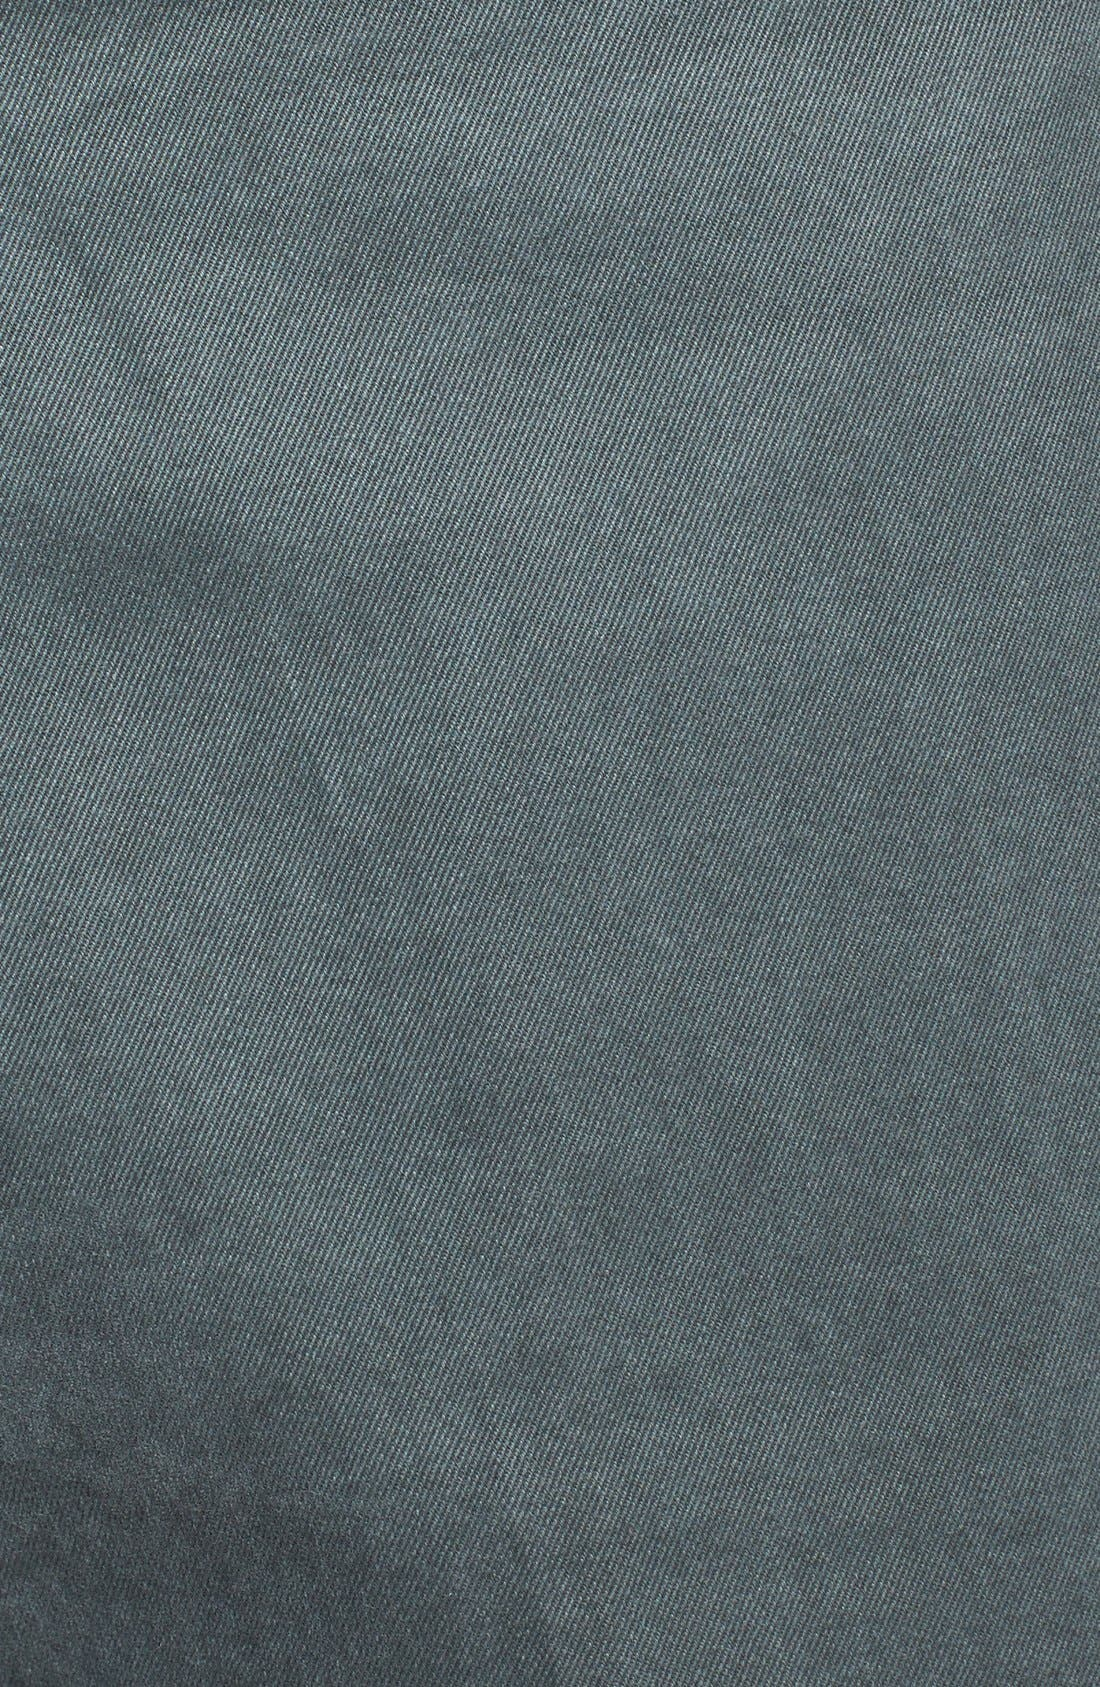 Garment Washed Twill Pants,                             Alternate thumbnail 22, color,